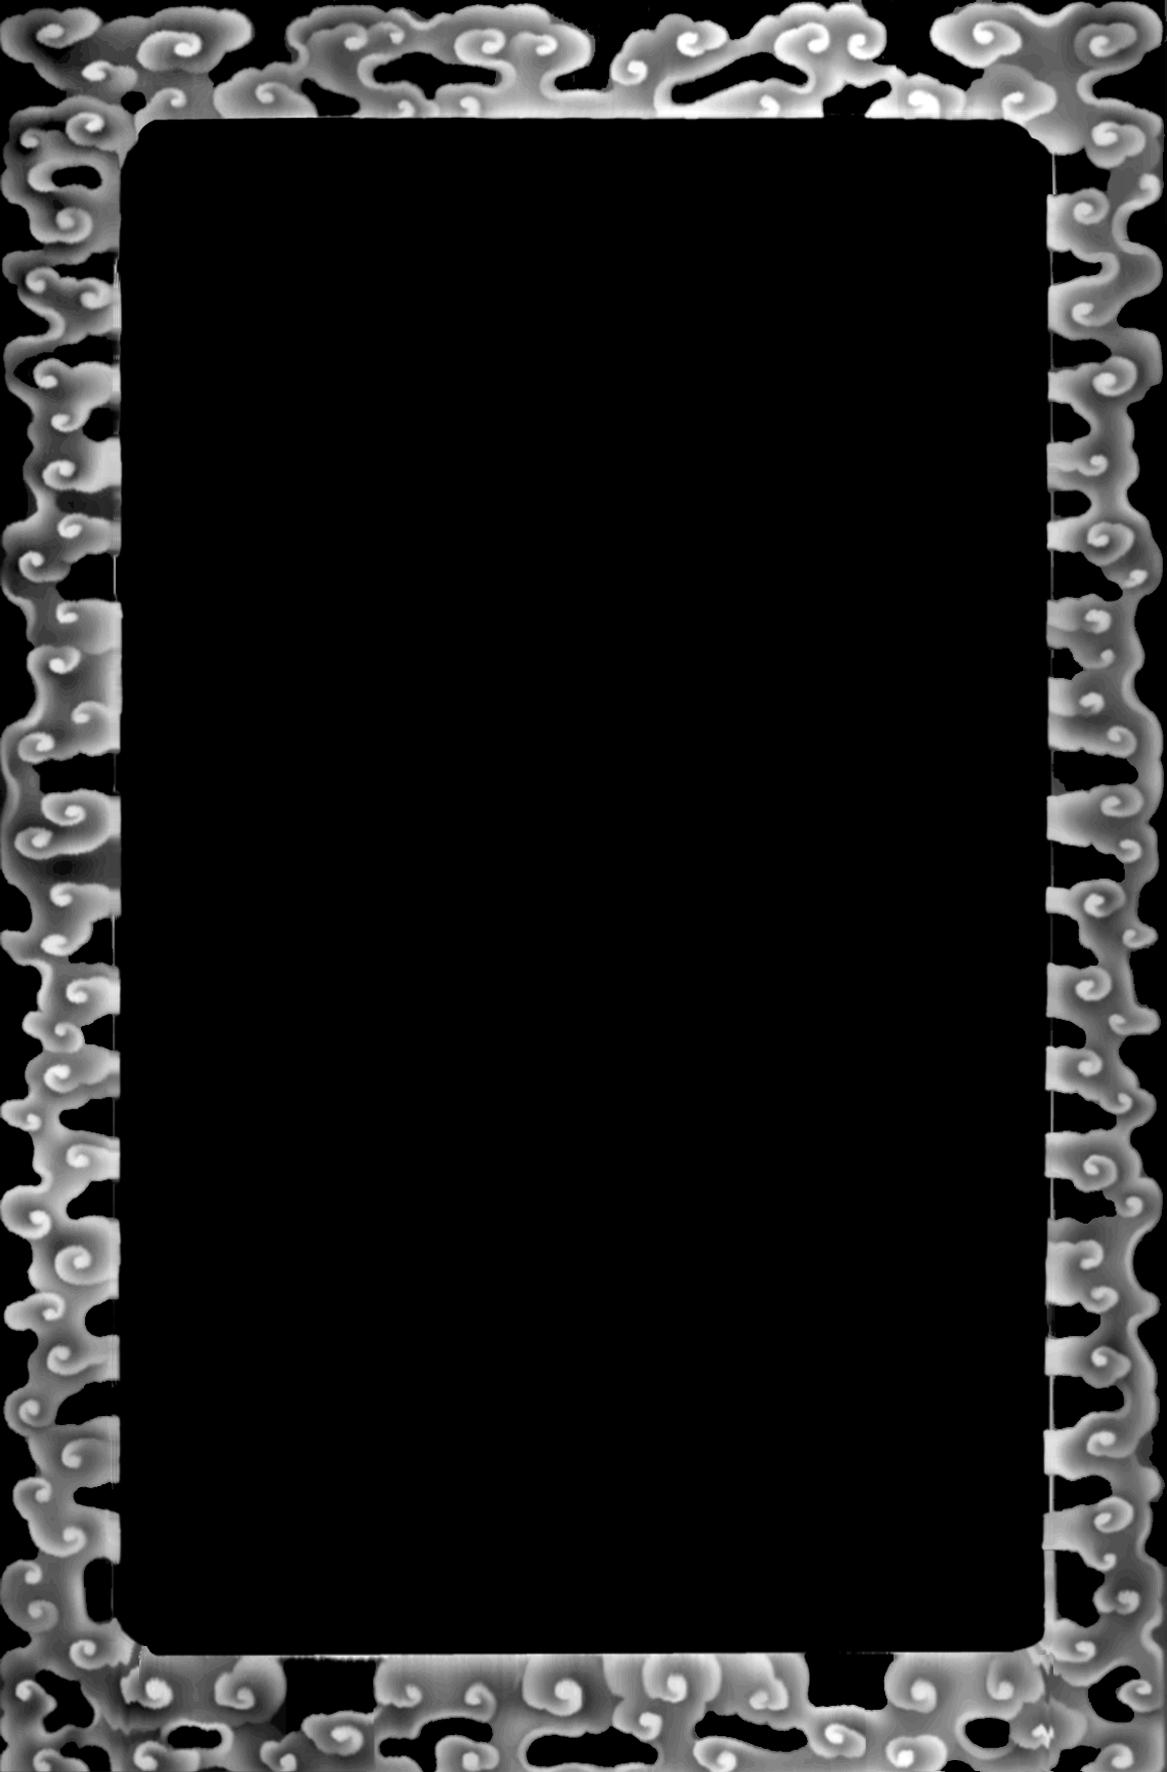 Grayscale Relief Image BMP File